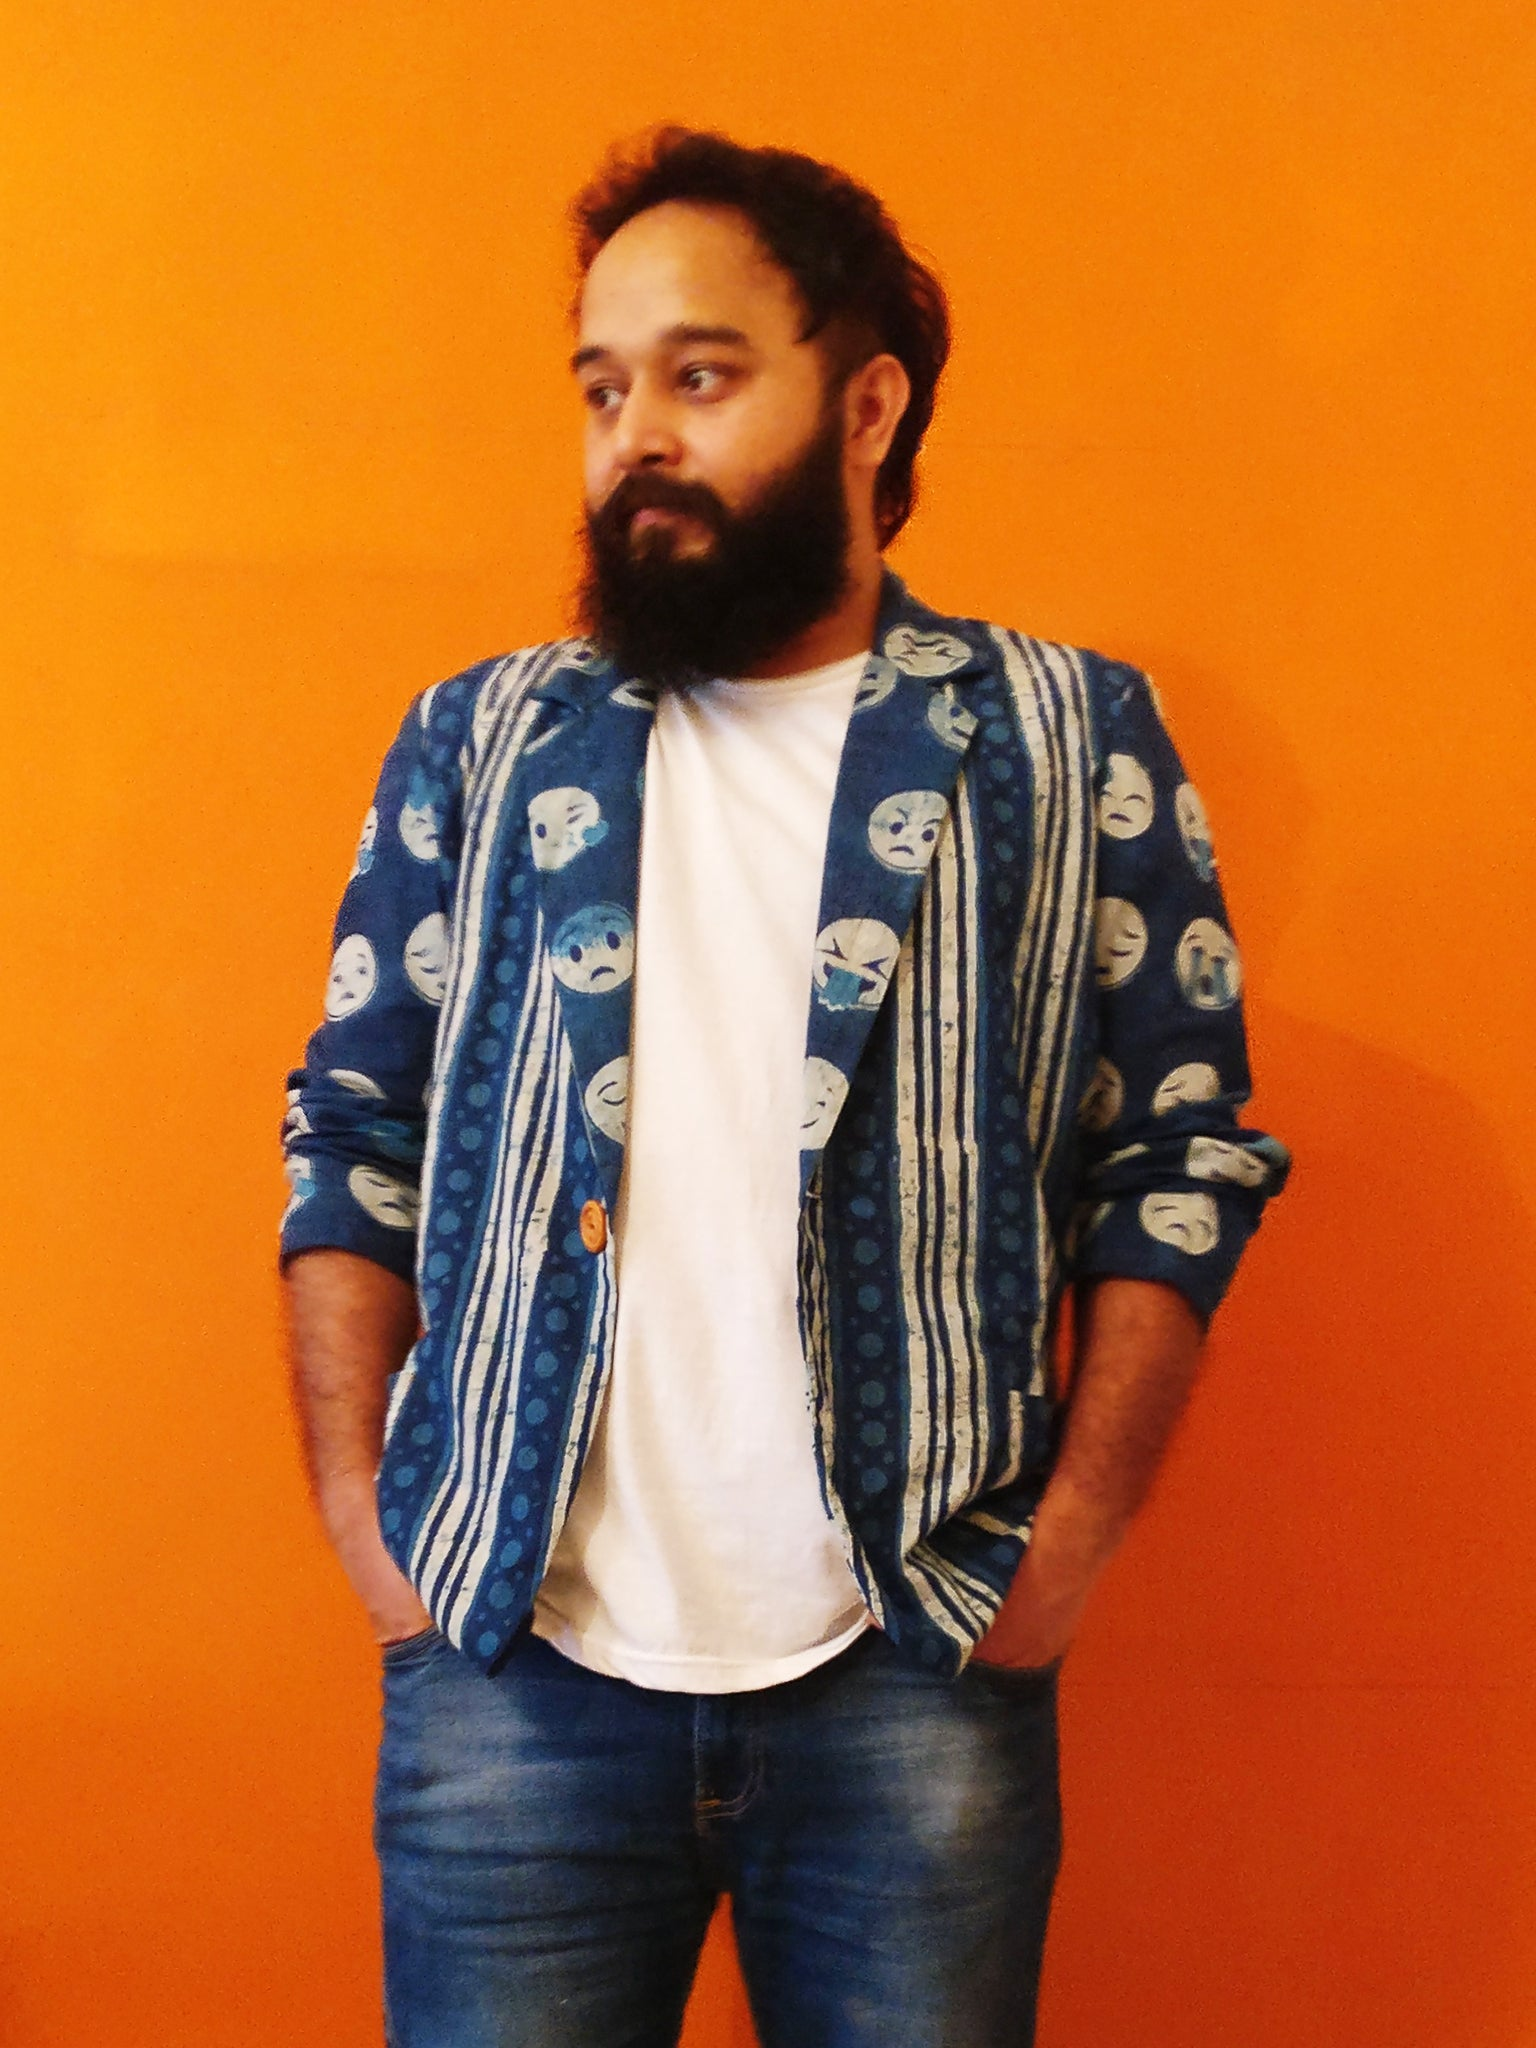 Indigo Cotton Blazer Jacket with Emoji prints for men's body. Quirky yet cool. Shop online!